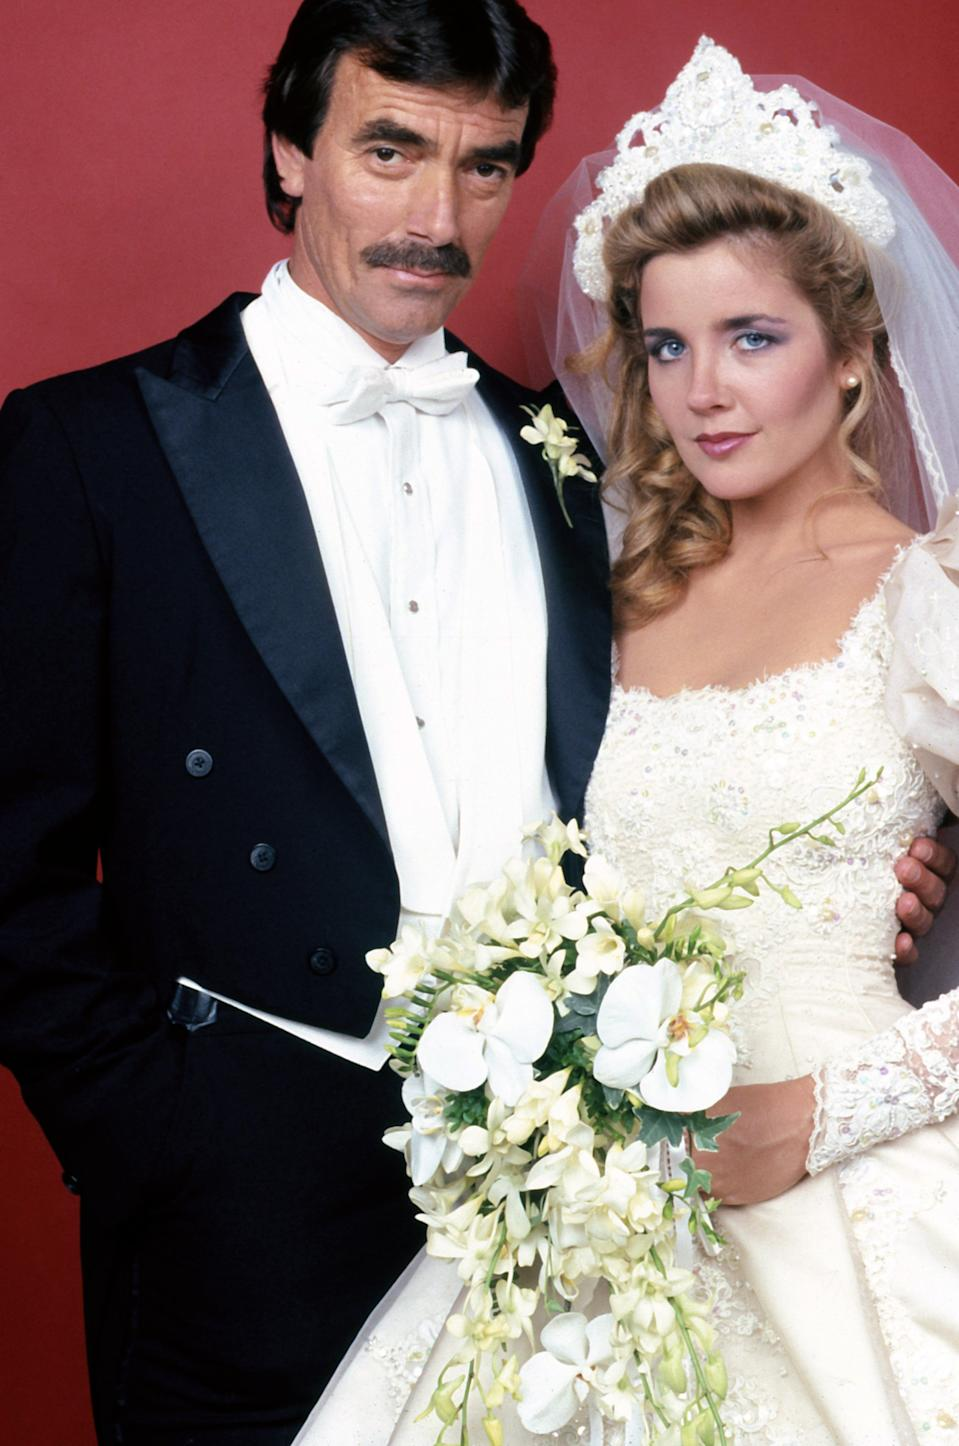 LOS ANGELES -  1992:  The Young And The Restless actors Eric Braeden and Melody Thomas pose for a portrait in 1992 in Los Angeles, California. (Photo by Donaldson Collection/Michael Ochs Archives/Getty Images)